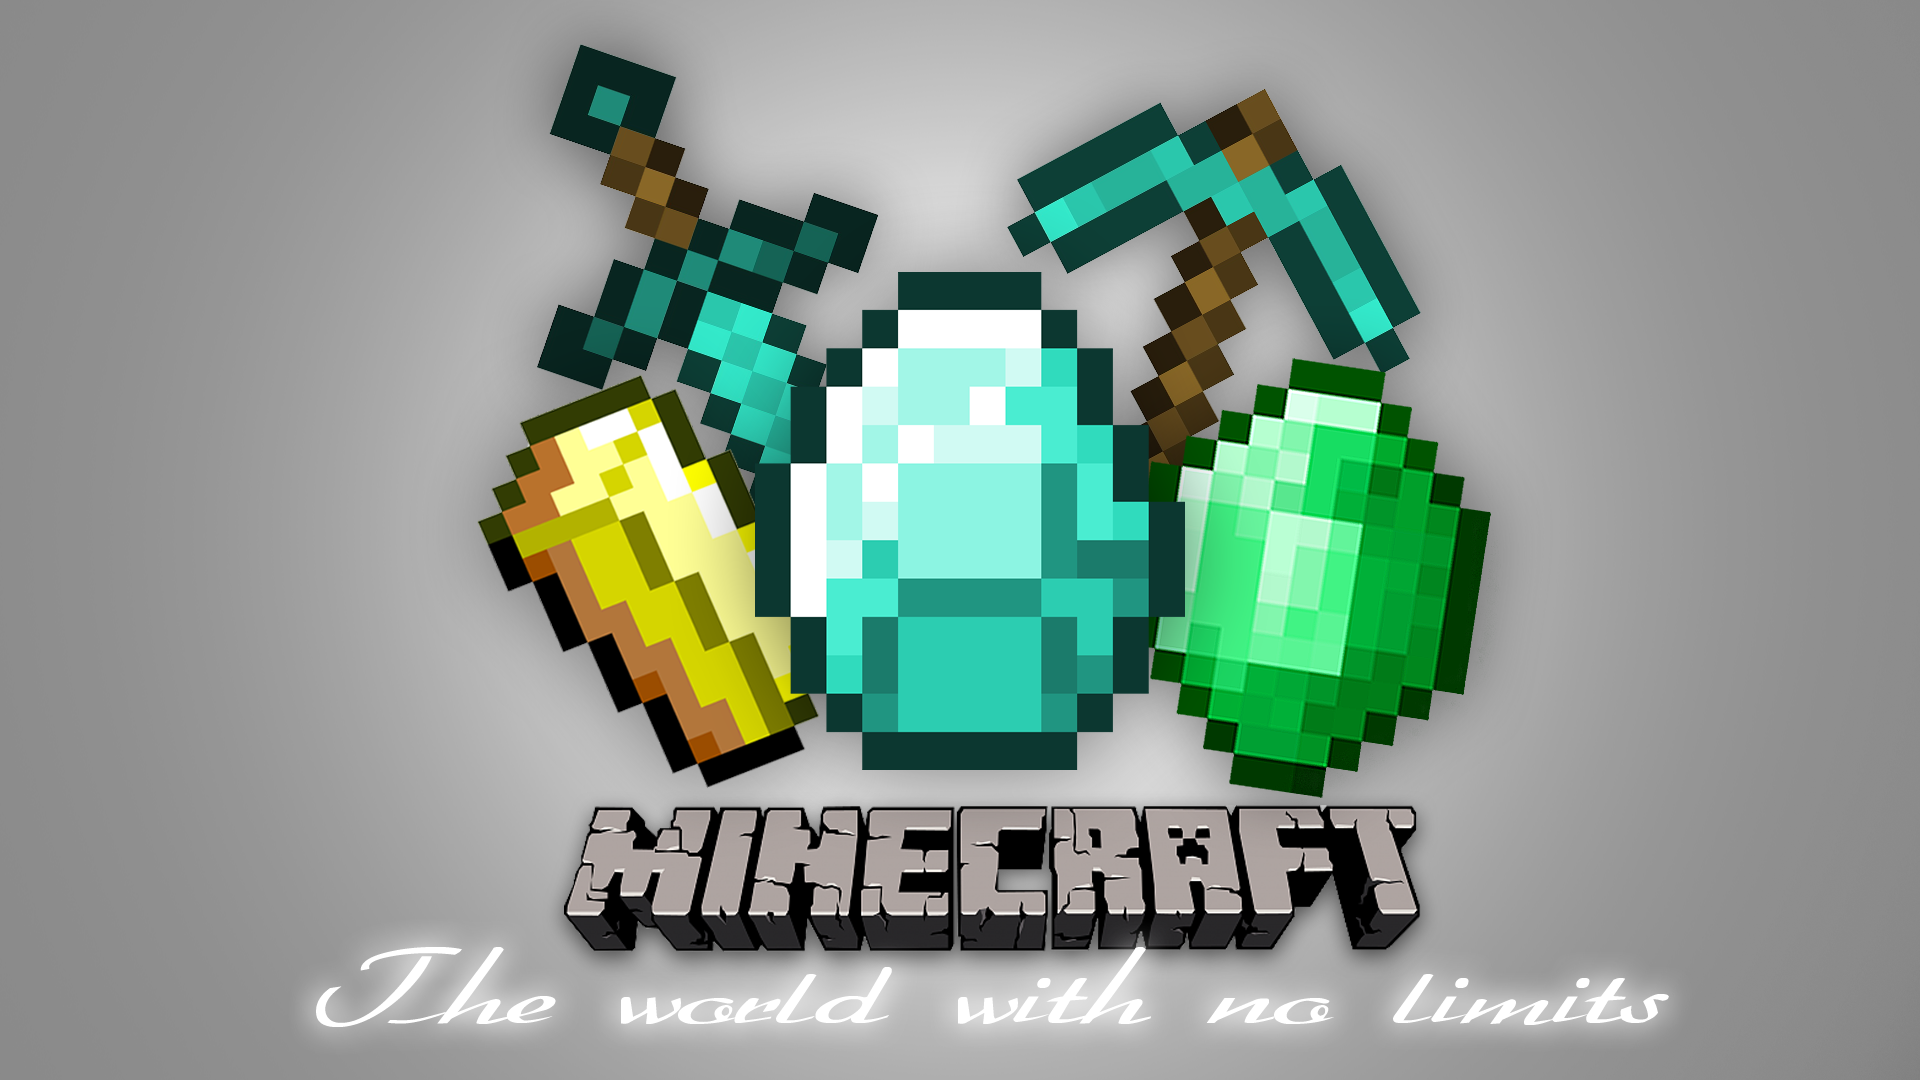 Minecraft Hd Wallpapers Free Minecraft Hd Wallpapers